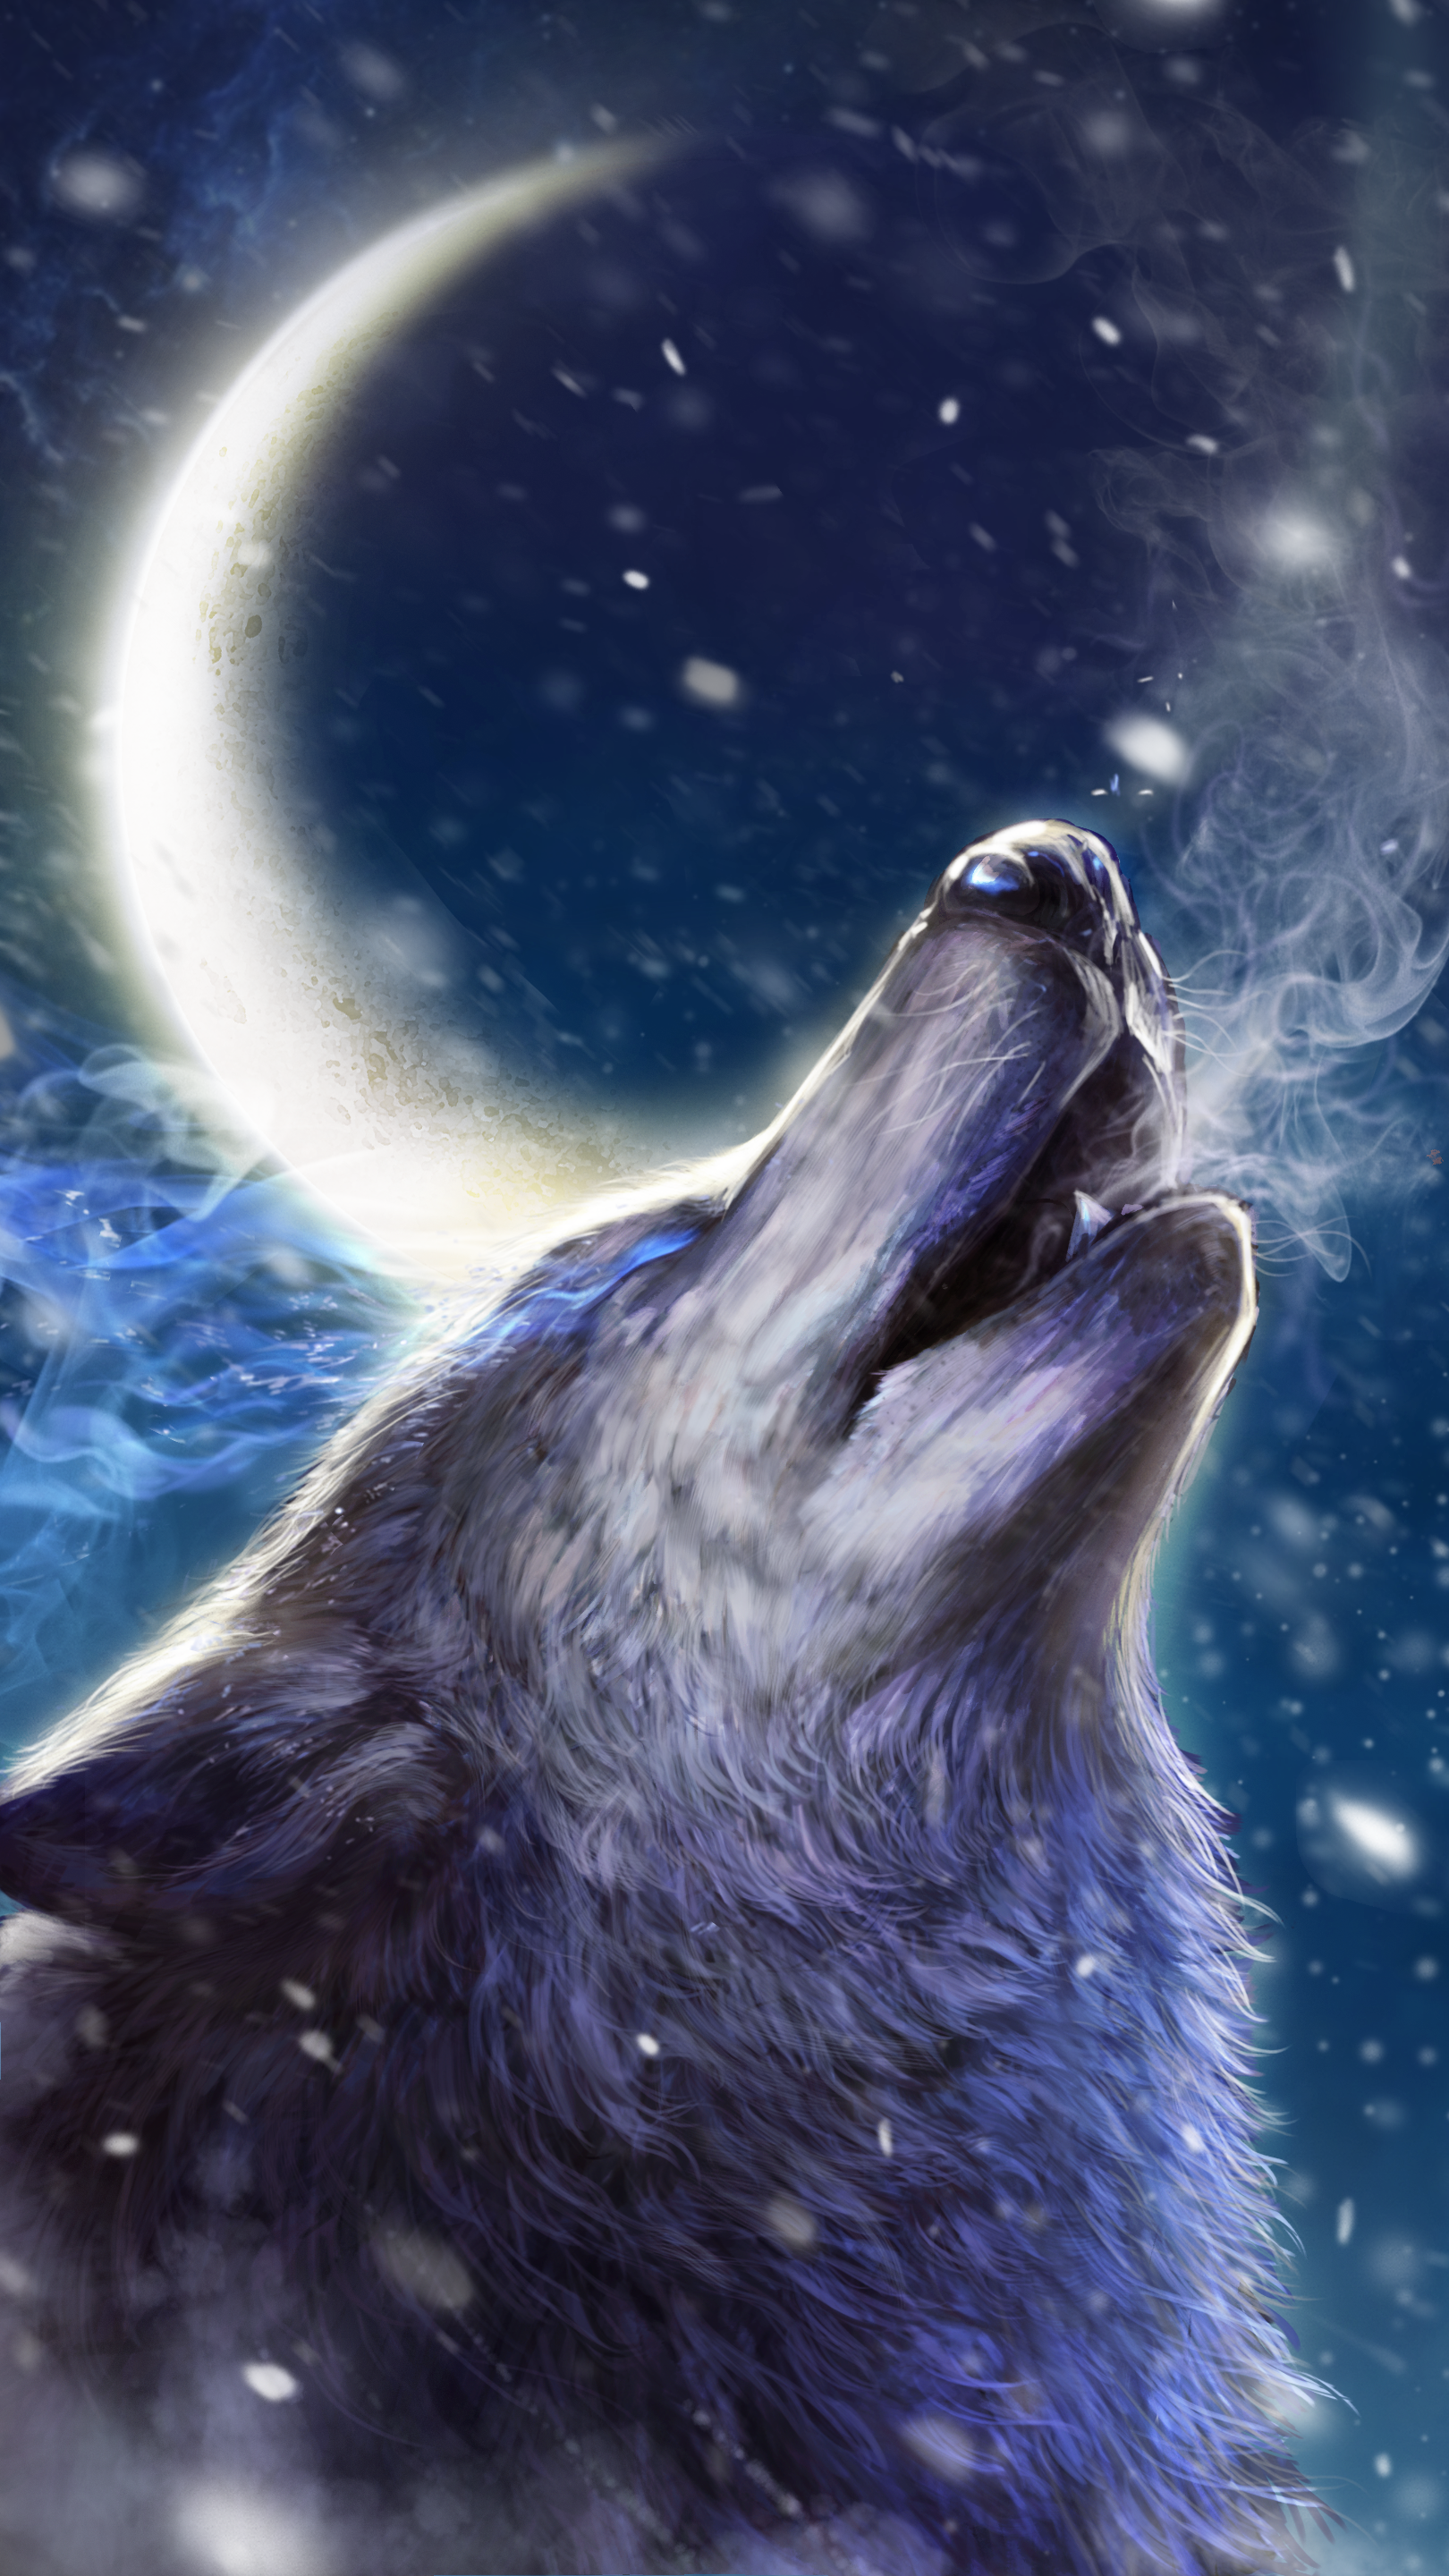 Howling wolf live wallpaper! | Android live wallpapers ...